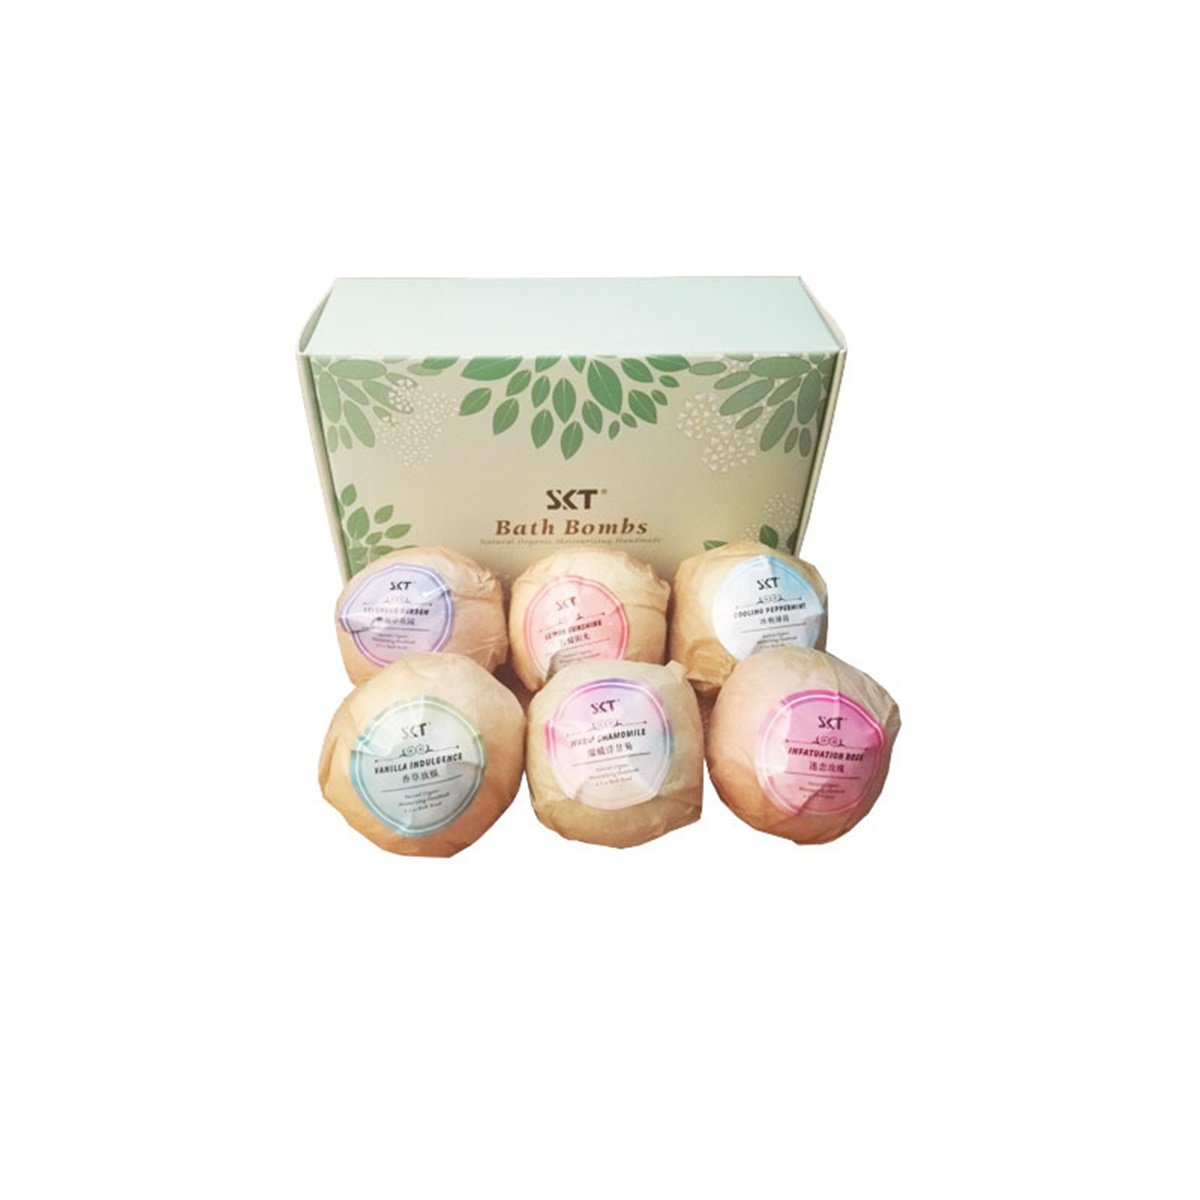 Bluesnow 6 Natural Essential Oil Bath Bomb Gift Set Dry Skin Moisturize Perfect for Bubble and Spa Bath for Women Mom Wife Girls Teens